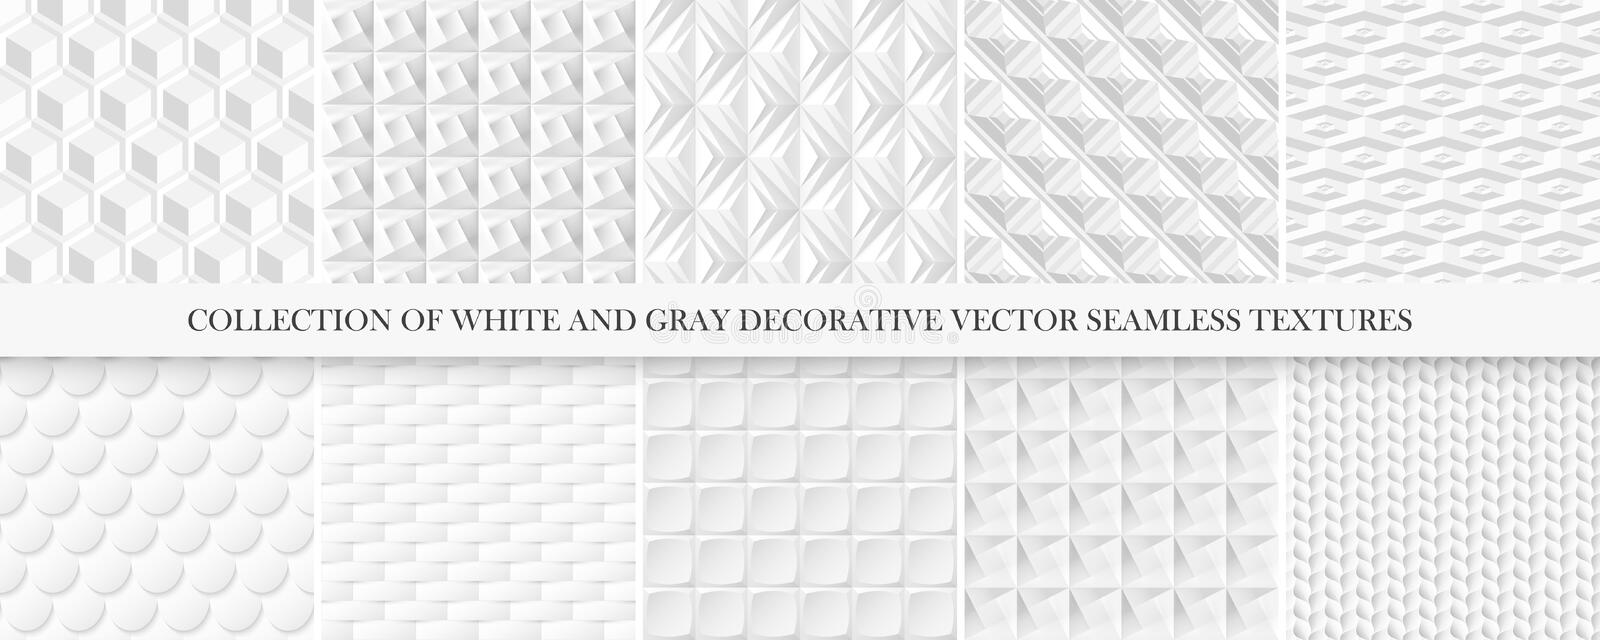 Collection of white and gray tile seamless decorative textures. Geometric repeatable backgrounds. Vector 3d patterns. vector illustration